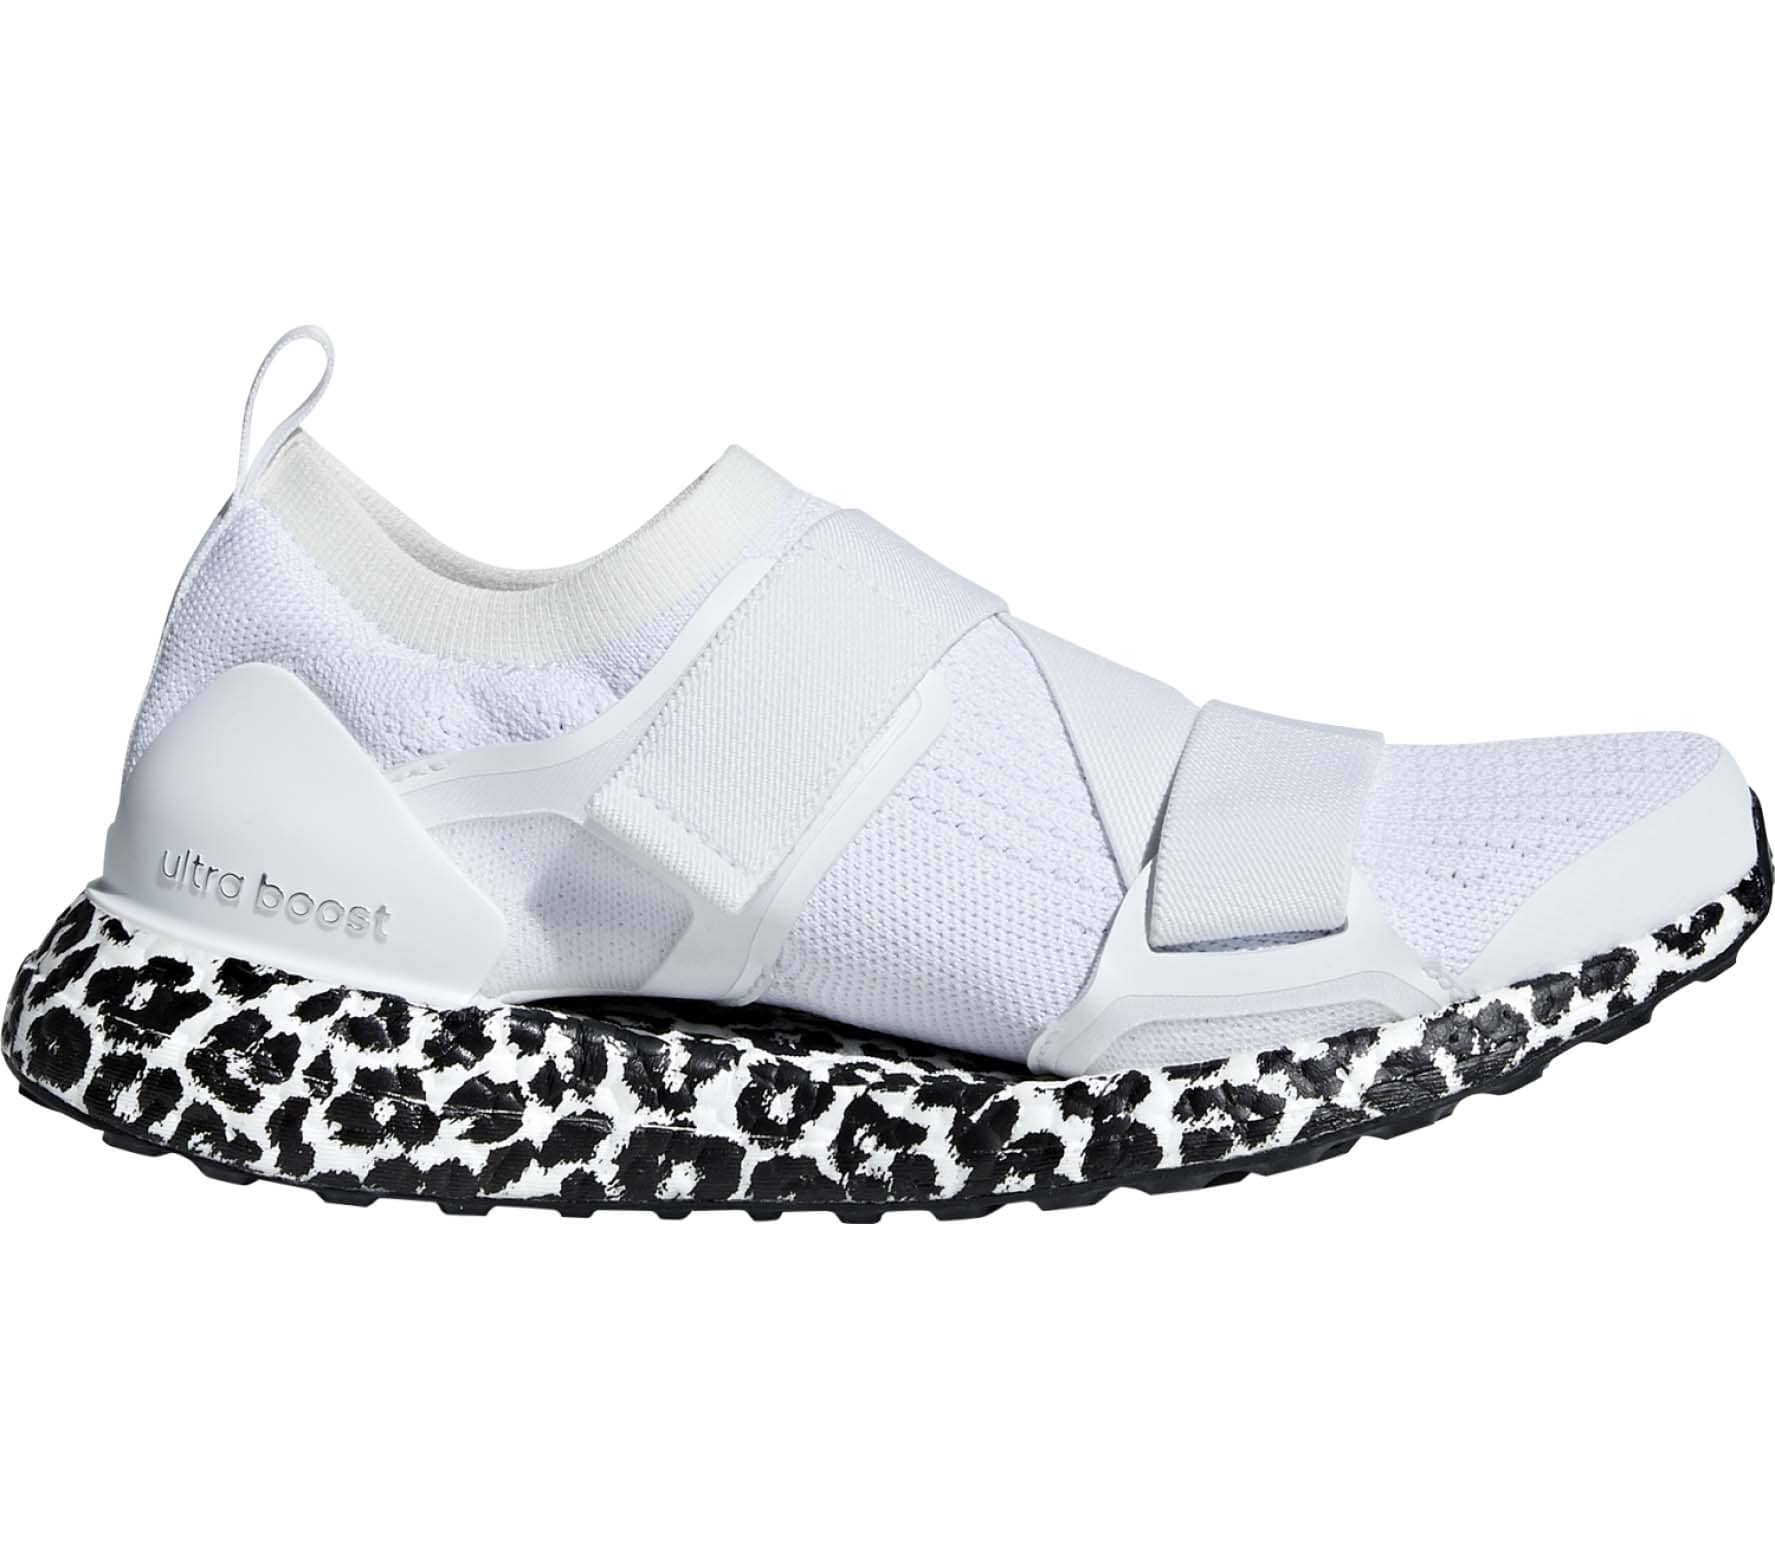 best website 6d62c 330ab adidas by StellaMcCartney - Ultraboost X Stella Mc Cartney women s running  shoes (white black